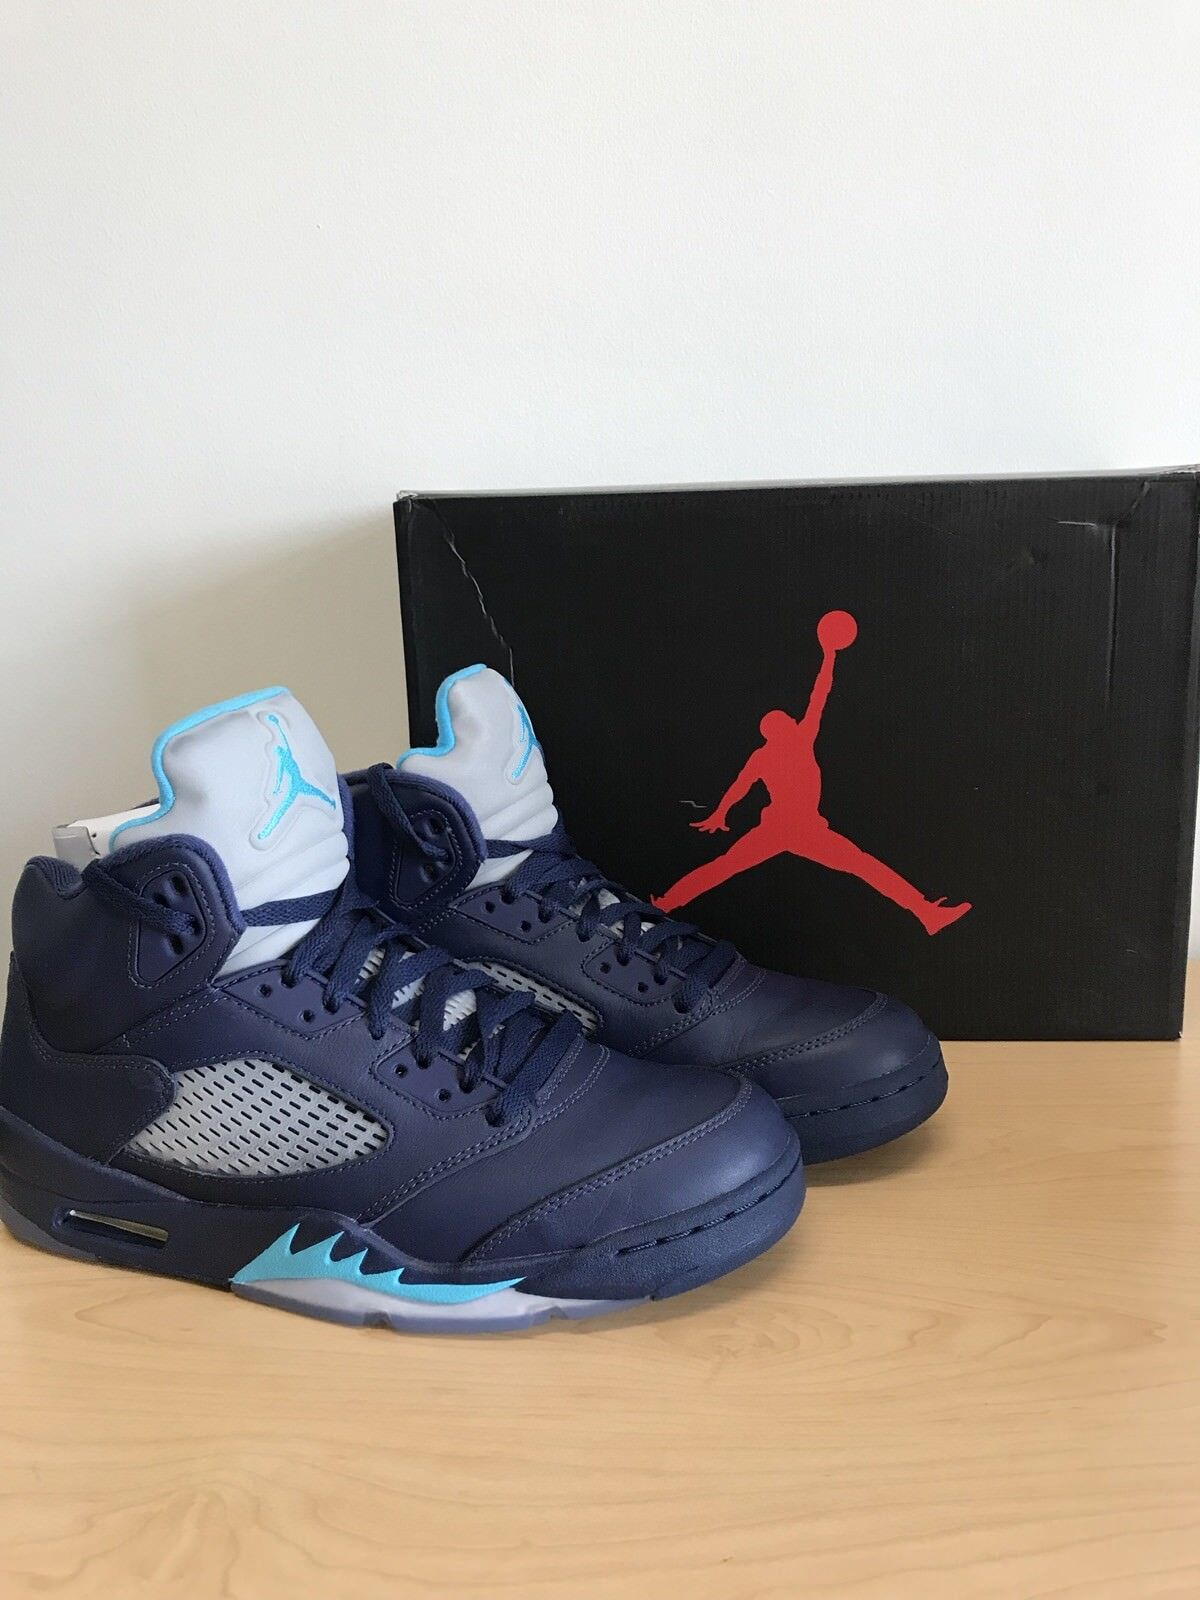 air jordan 5 retro midnight navy Size-9.5